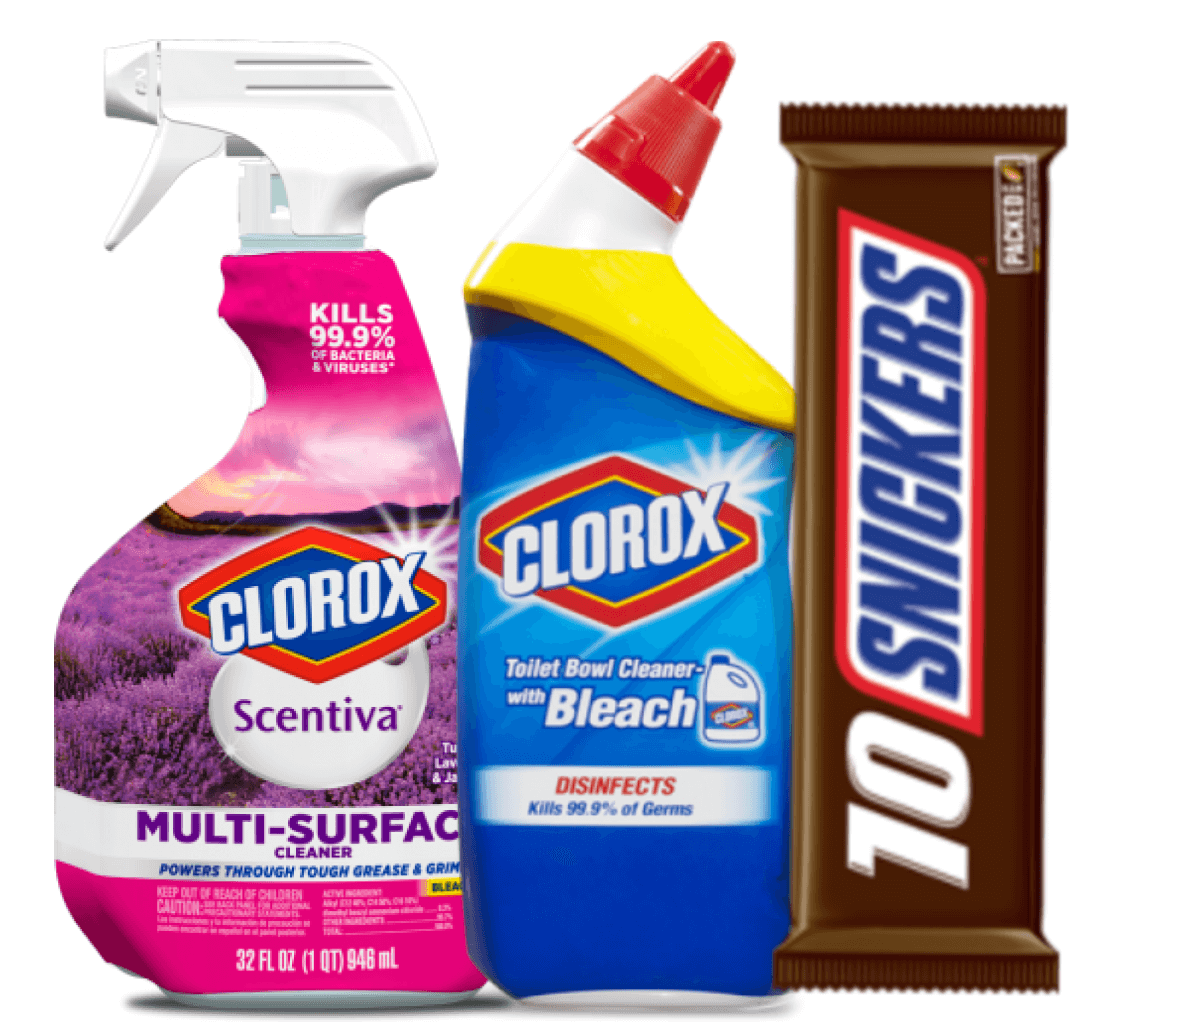 photograph relating to Clorox Printable Coupons referred to as Todays Ultimate Fresh new Discount coupons - Conserve upon Snickers, Clorox